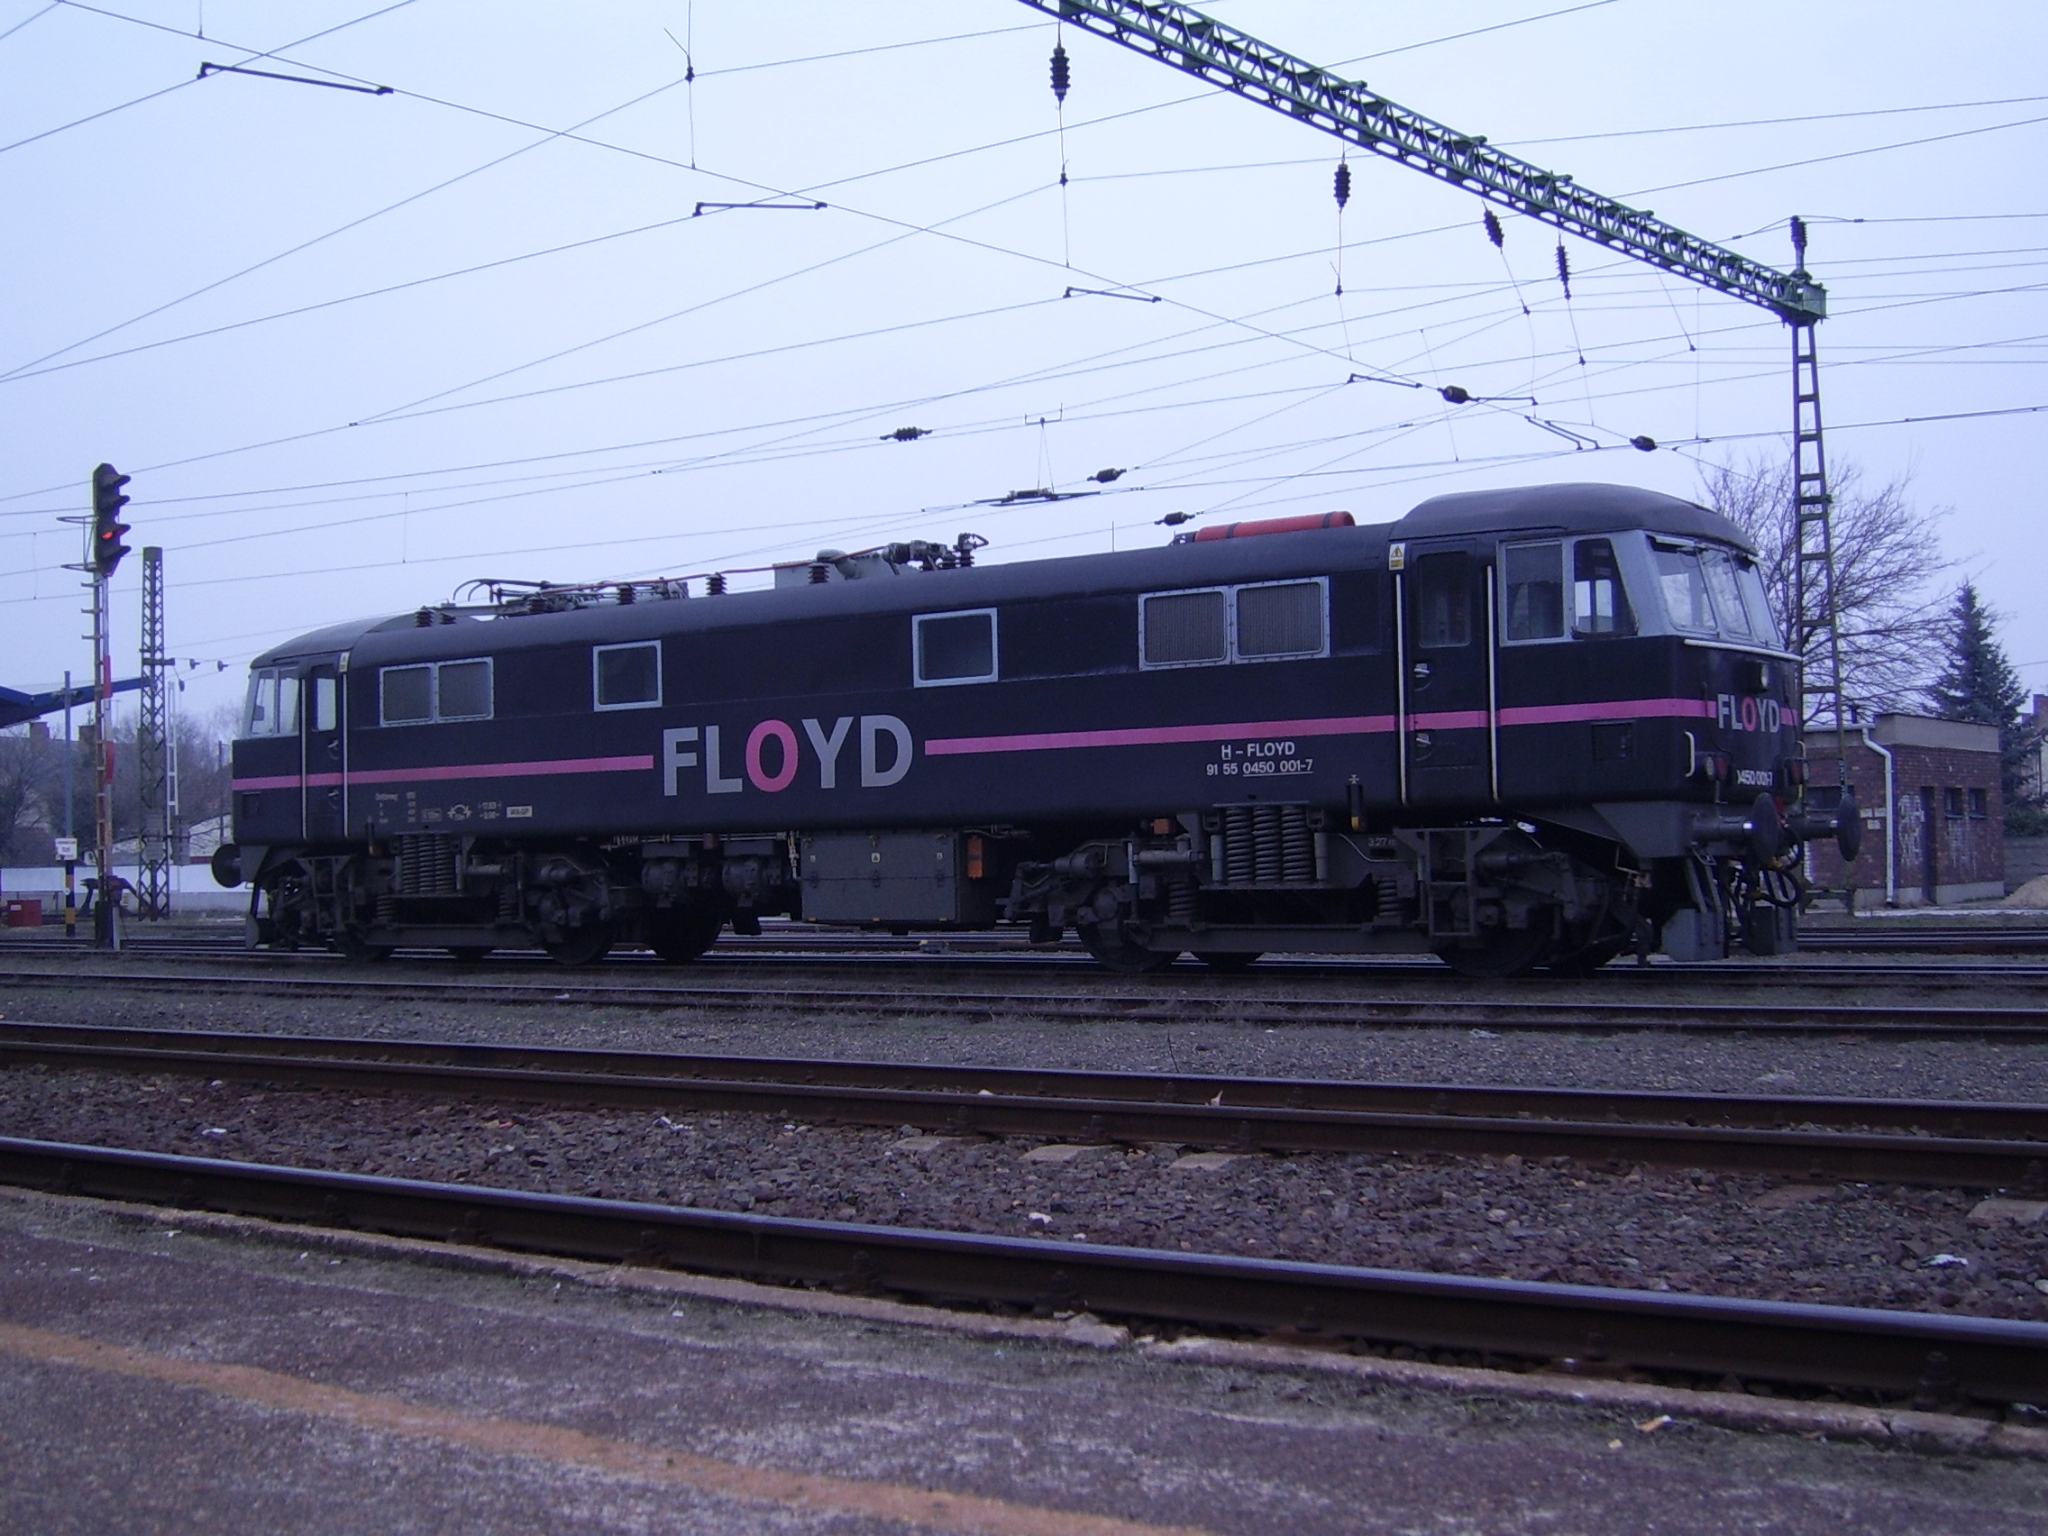 86248 0450 001 owned by the hungarian floyd co in kecskemet hungary